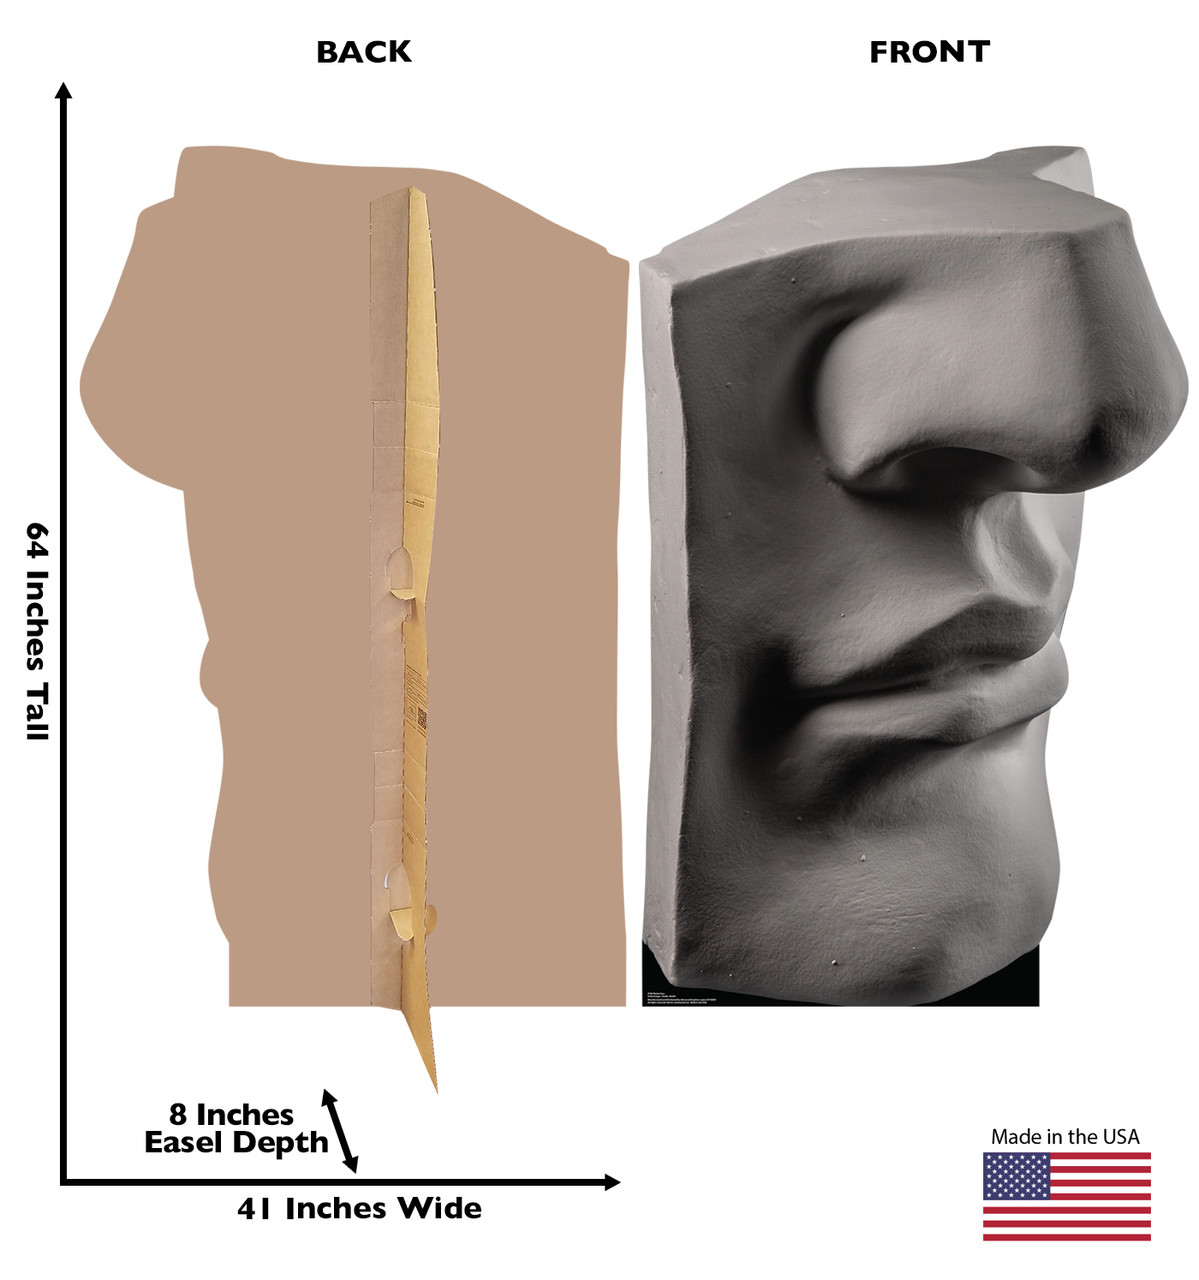 Life-size cardboard standee of a Plaster Face with back and front dimensions.